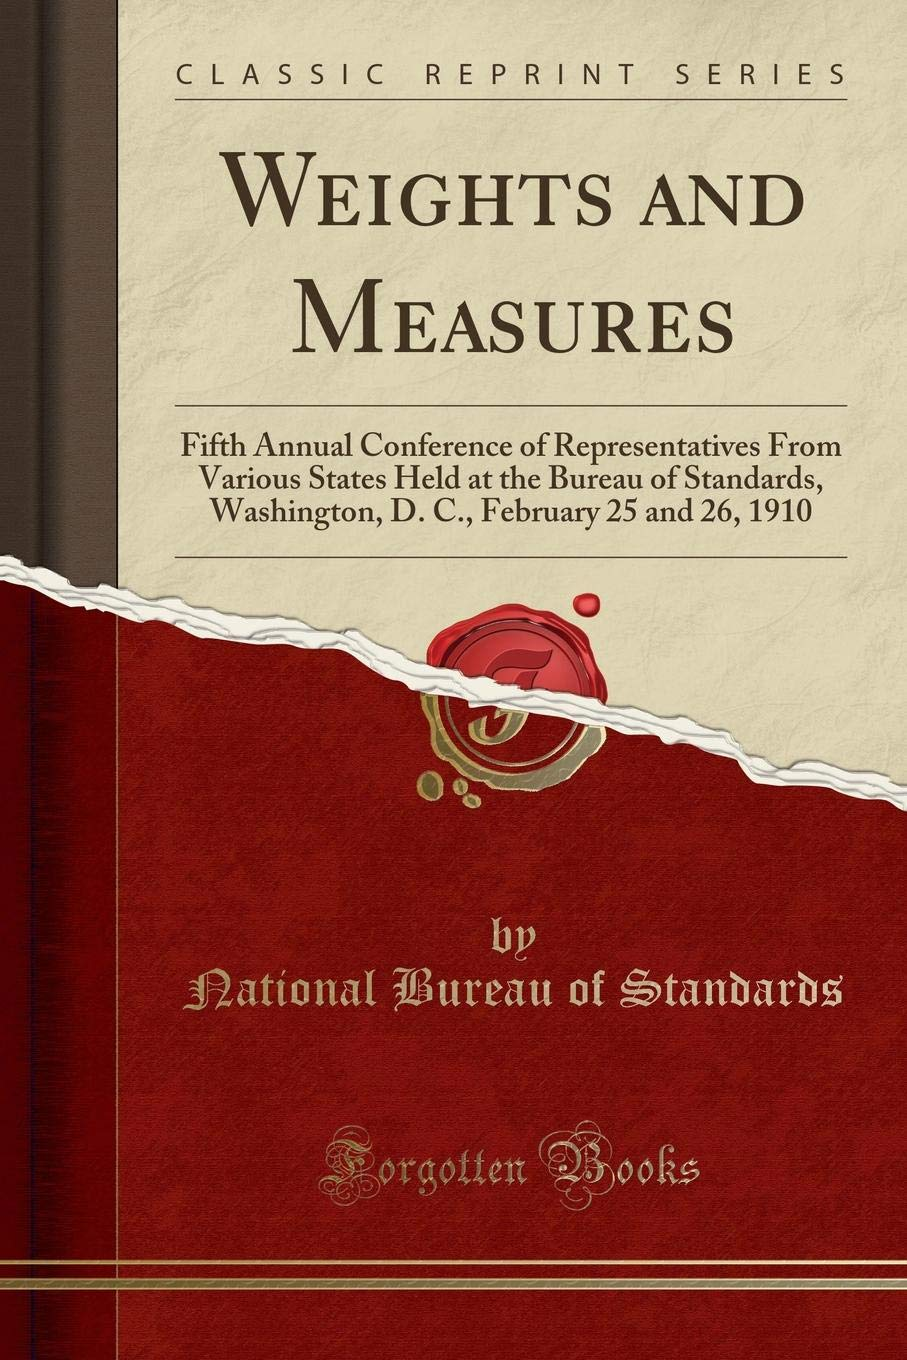 Weights and Measures: Fifth Annual Conference of Representatives From Various States Held at the Bureau of Standards, Washington, D. C., February 25 and 26, 1910 (Classic Reprint) pdf